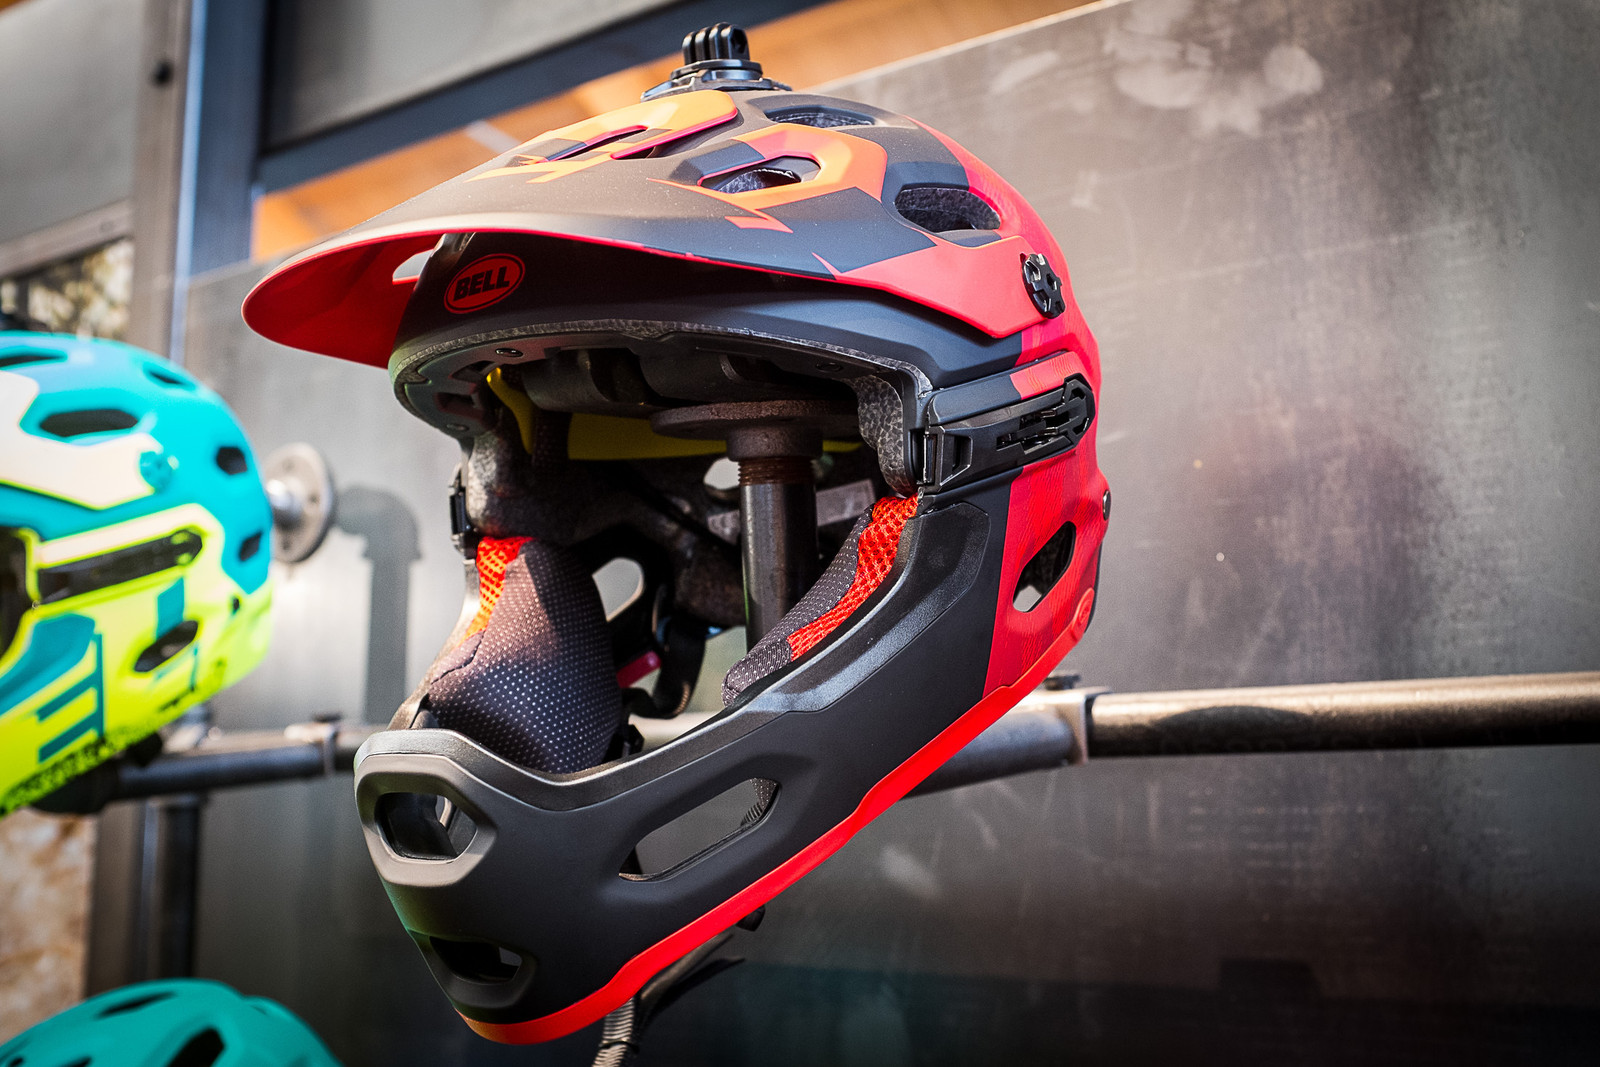 Updated Bell Super 3R with Float Fit - EUROBIKE - 2017 Mountain Bike Apparel and Protective Gear - Mountain Biking Pictures - Vital MTB